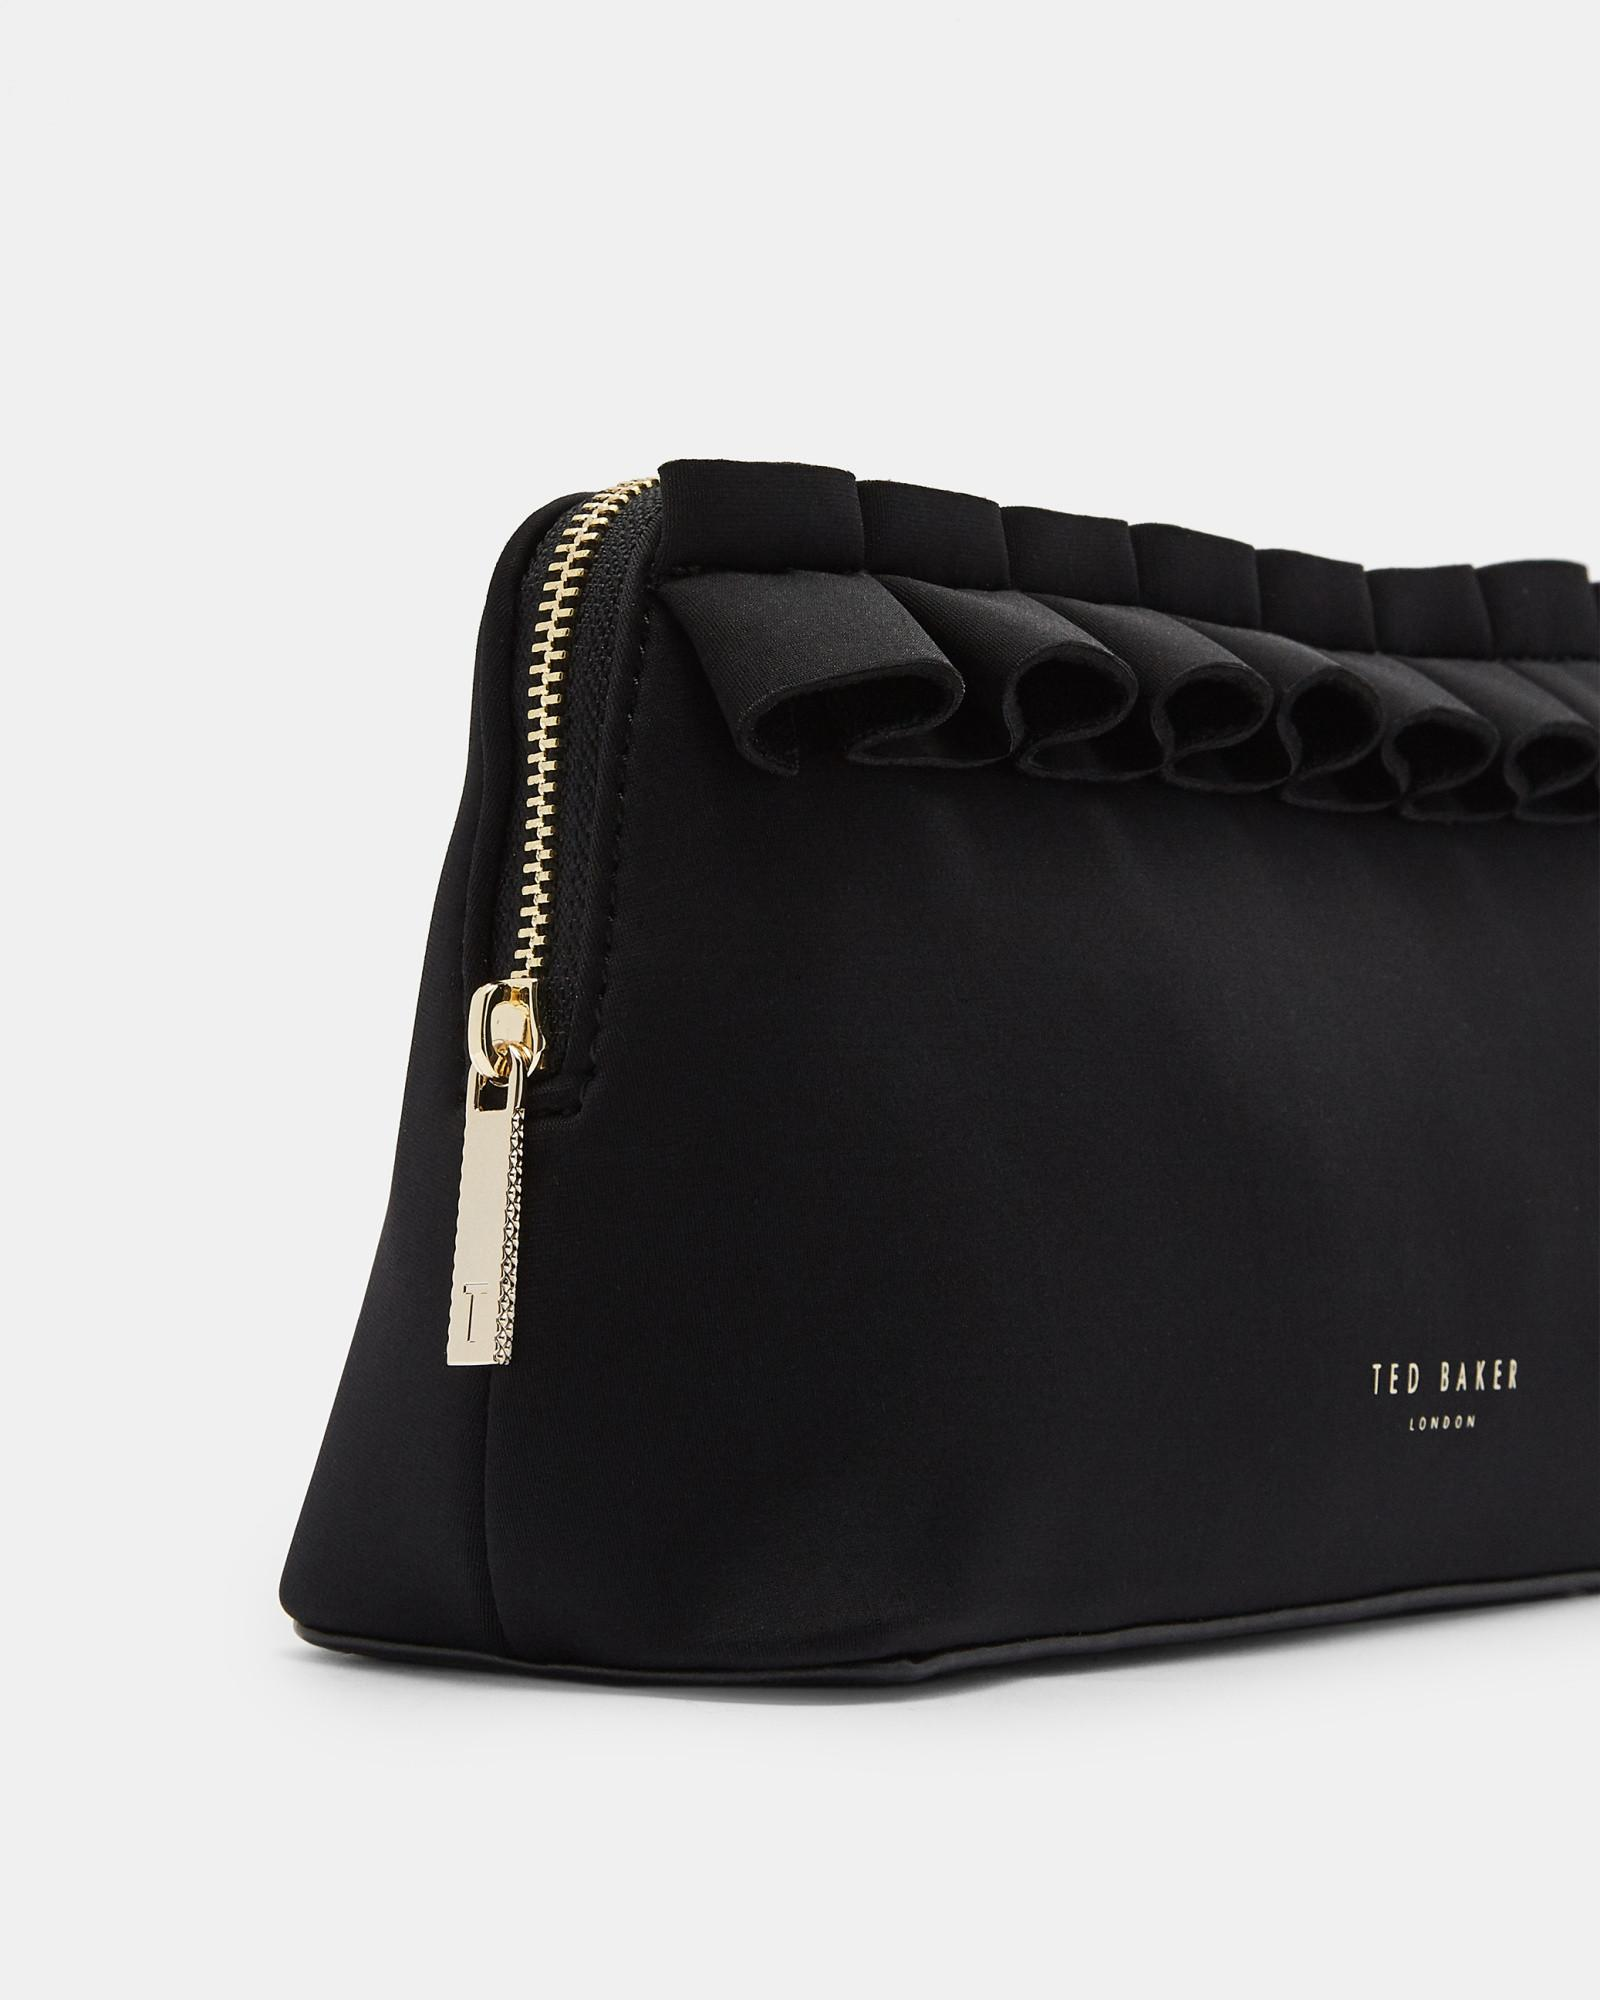 a4503918dcbb1f Lyst - Ted Baker Ruffle Detail Make Up Bag in Black